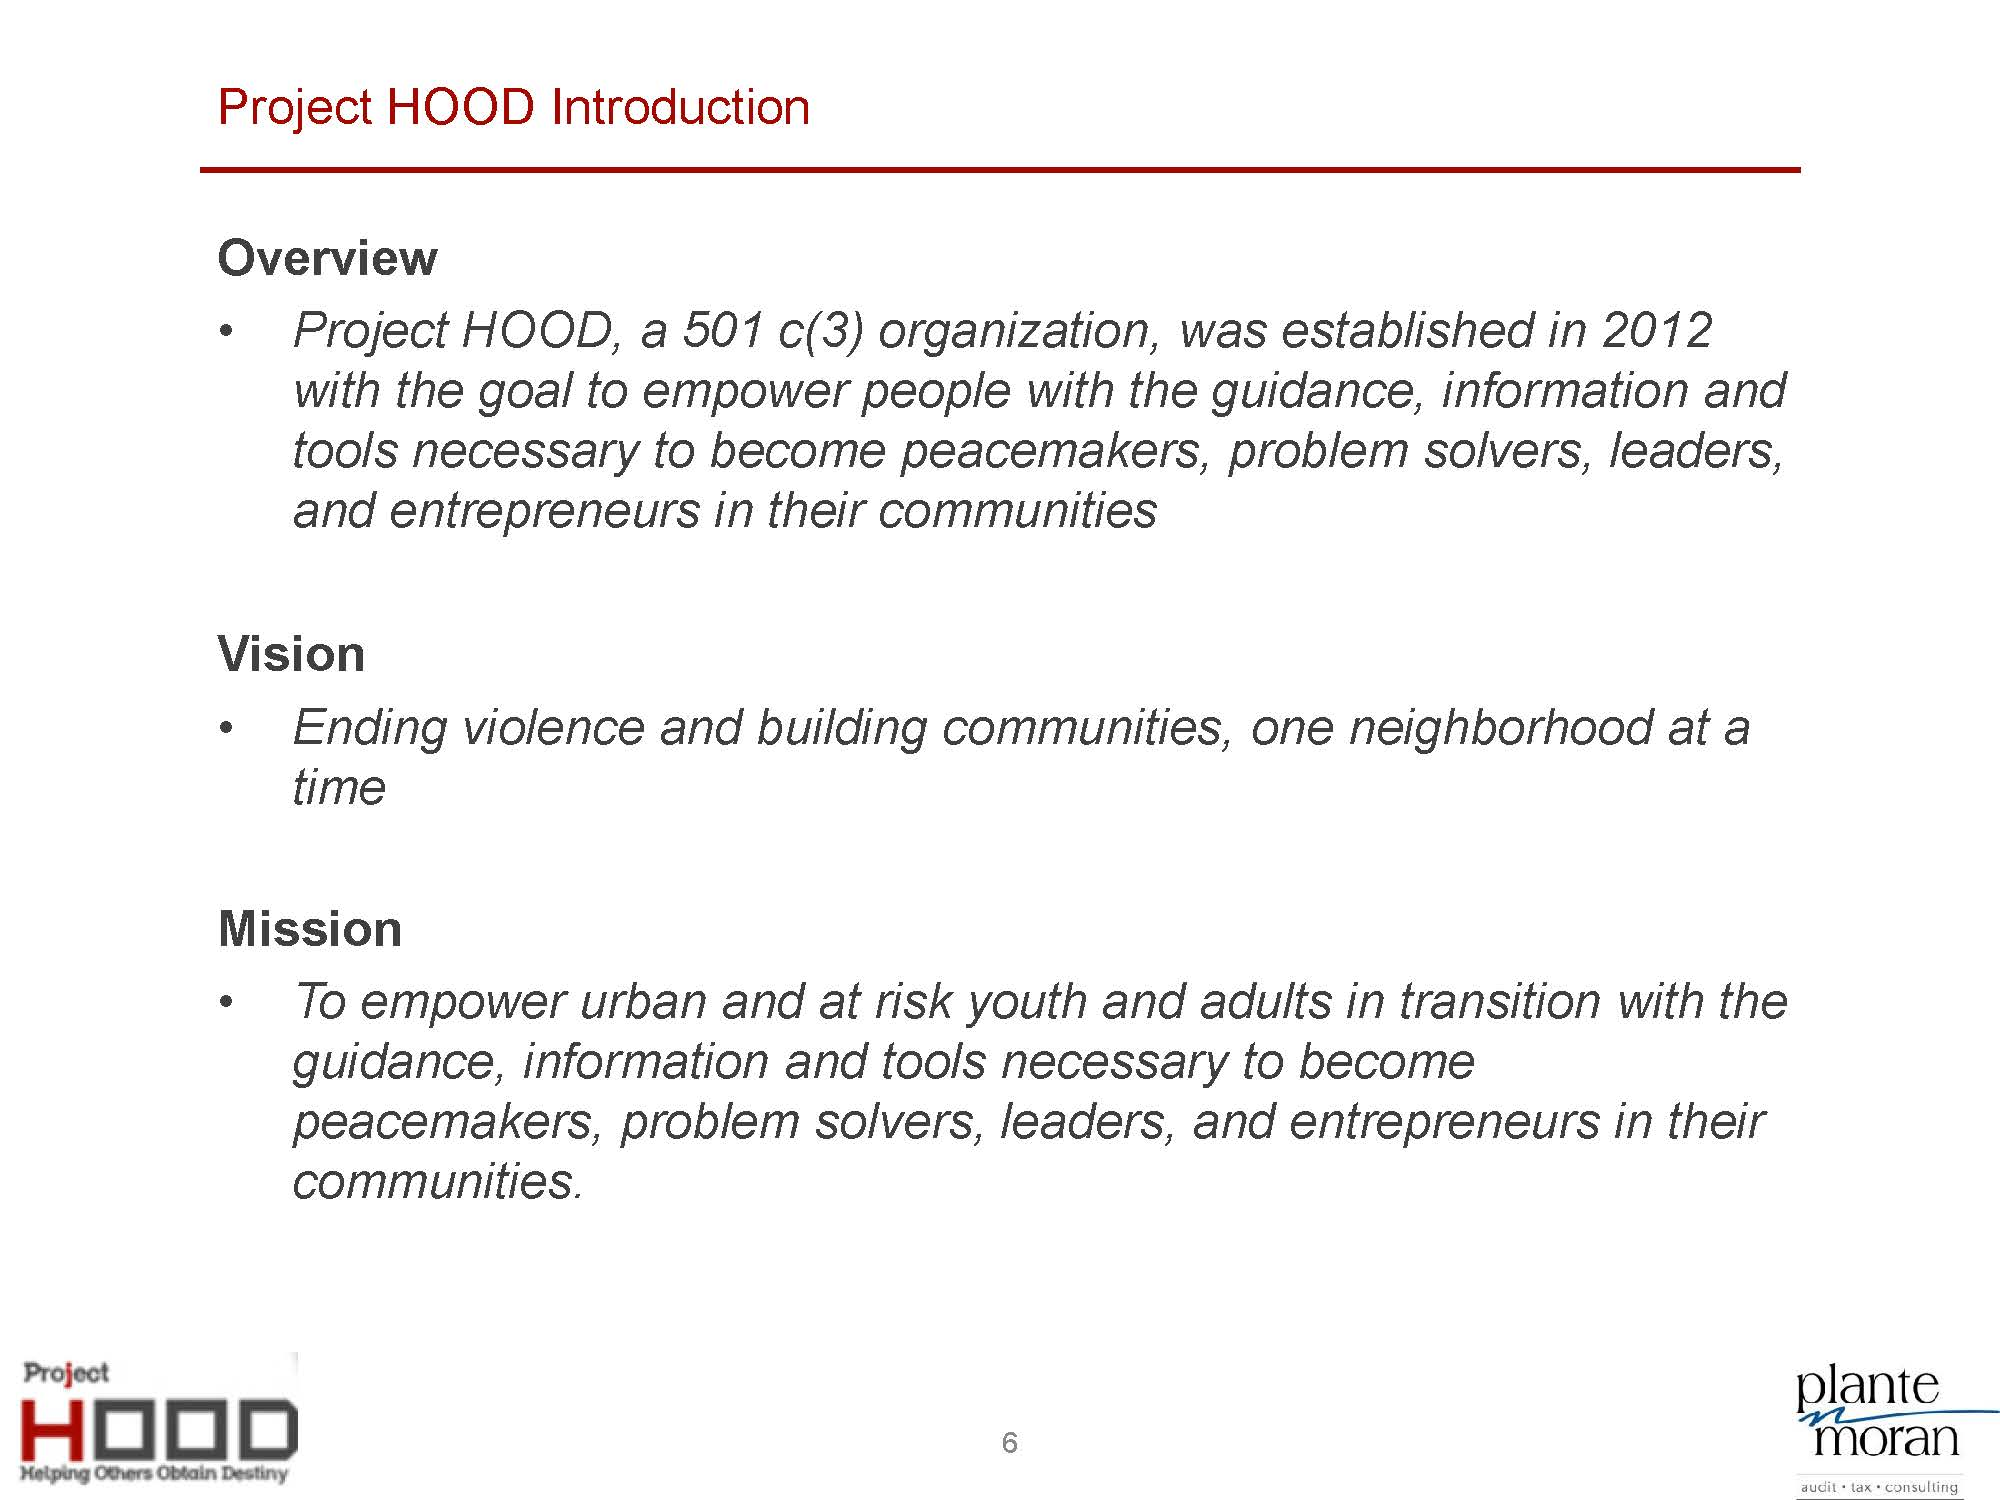 Project HOOD Community Center Business Plan_8-5_Page_06.jpg